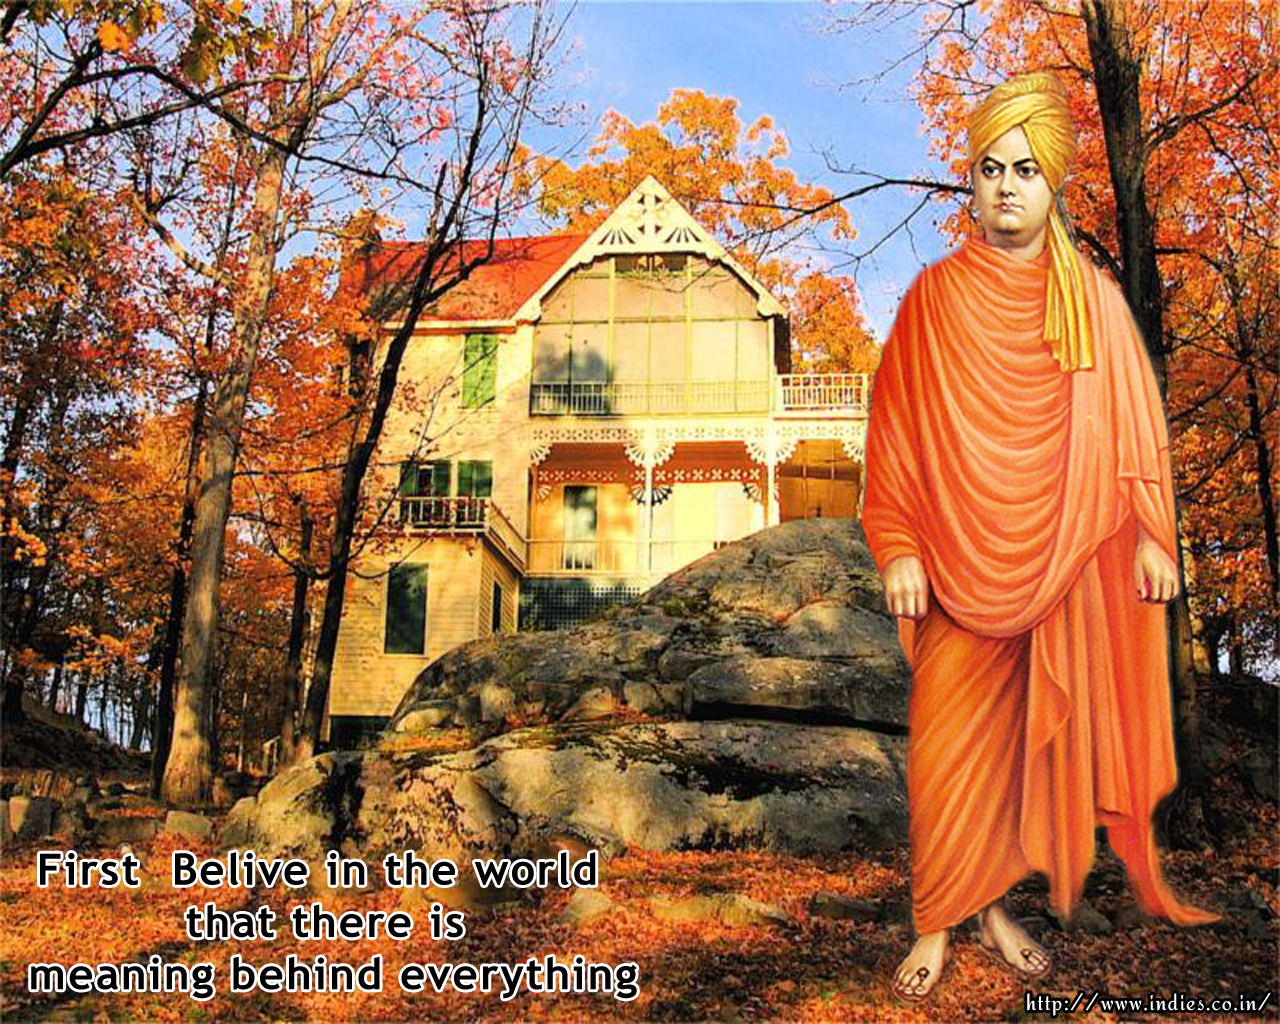 http://2.bp.blogspot.com/-VYwH9aS8kAI/UGKWmnkT4lI/AAAAAAAAC9I/aTxN-c0k974/s1600/swami-vivekananda-quotes-wallpapers2.jpg